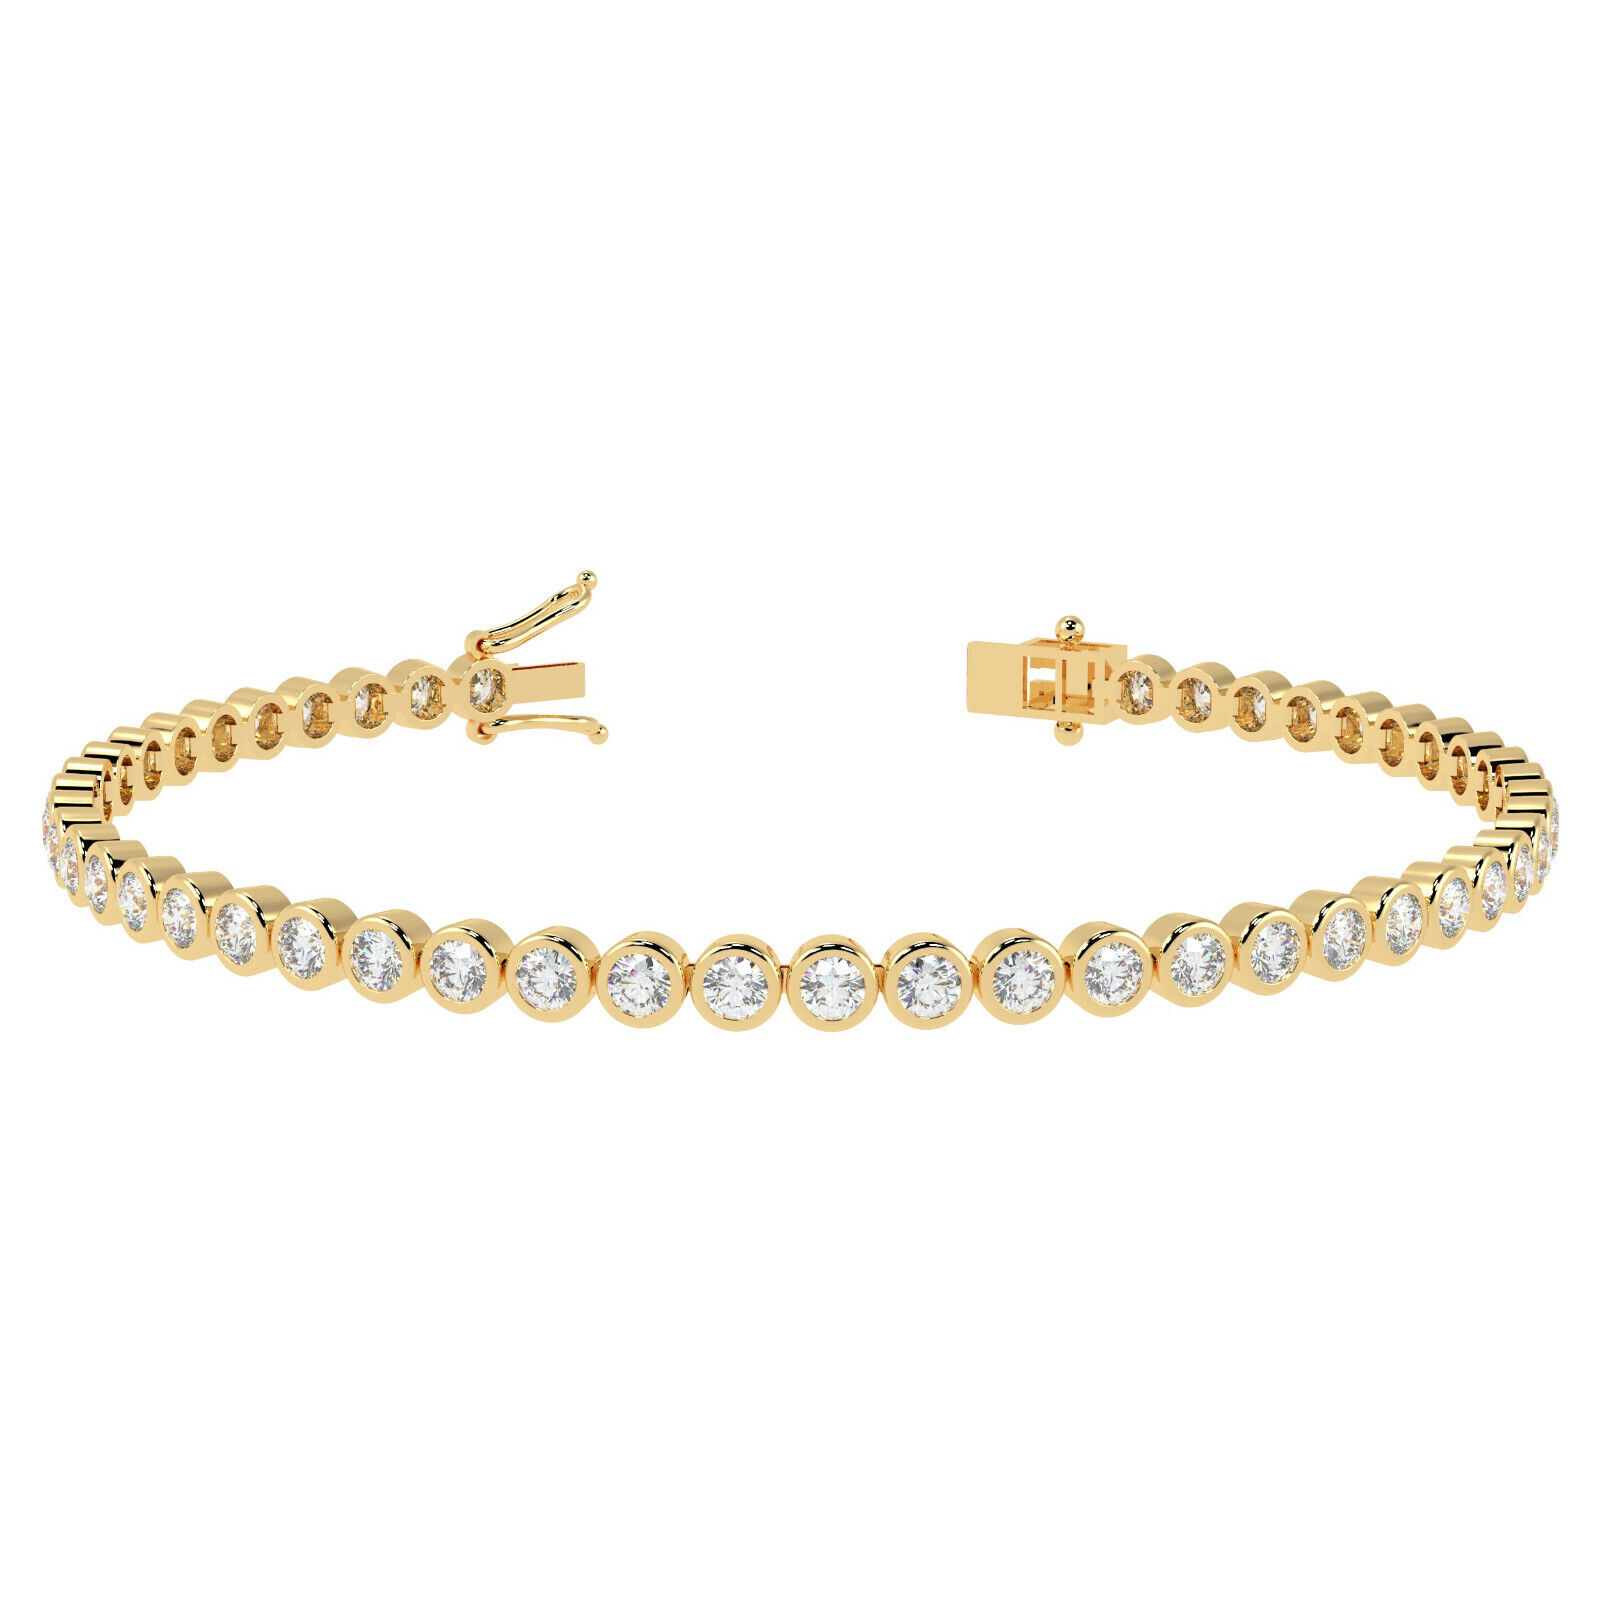 5.90ct Round Diamond Bezel set Tennis Bracelet, 18k Yellow gold